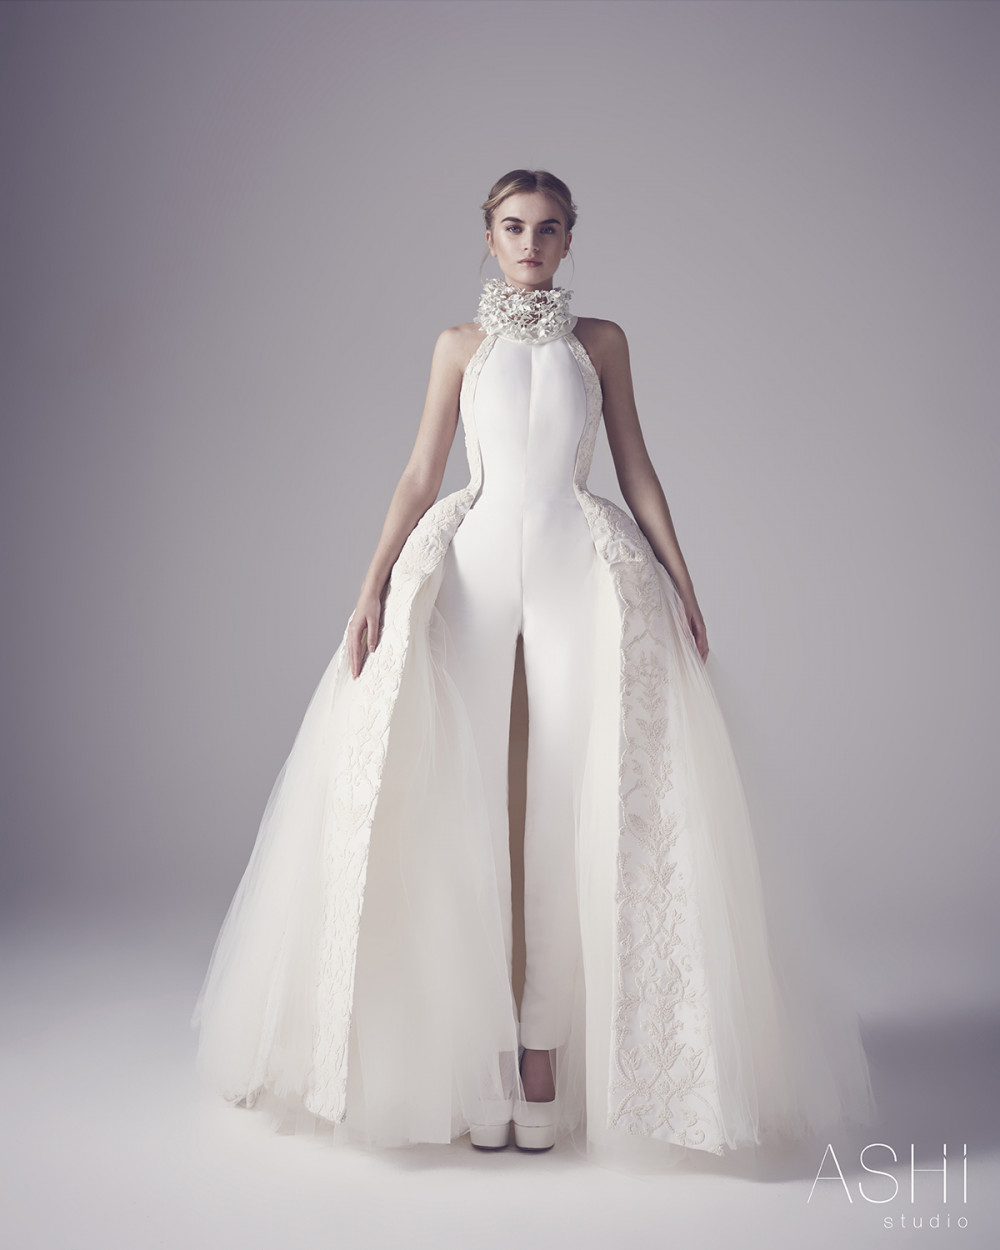 Ashi Studio_Spring Summer 2016 Couture Collection_BellaNaija Weddings_Ashi_15-002_large